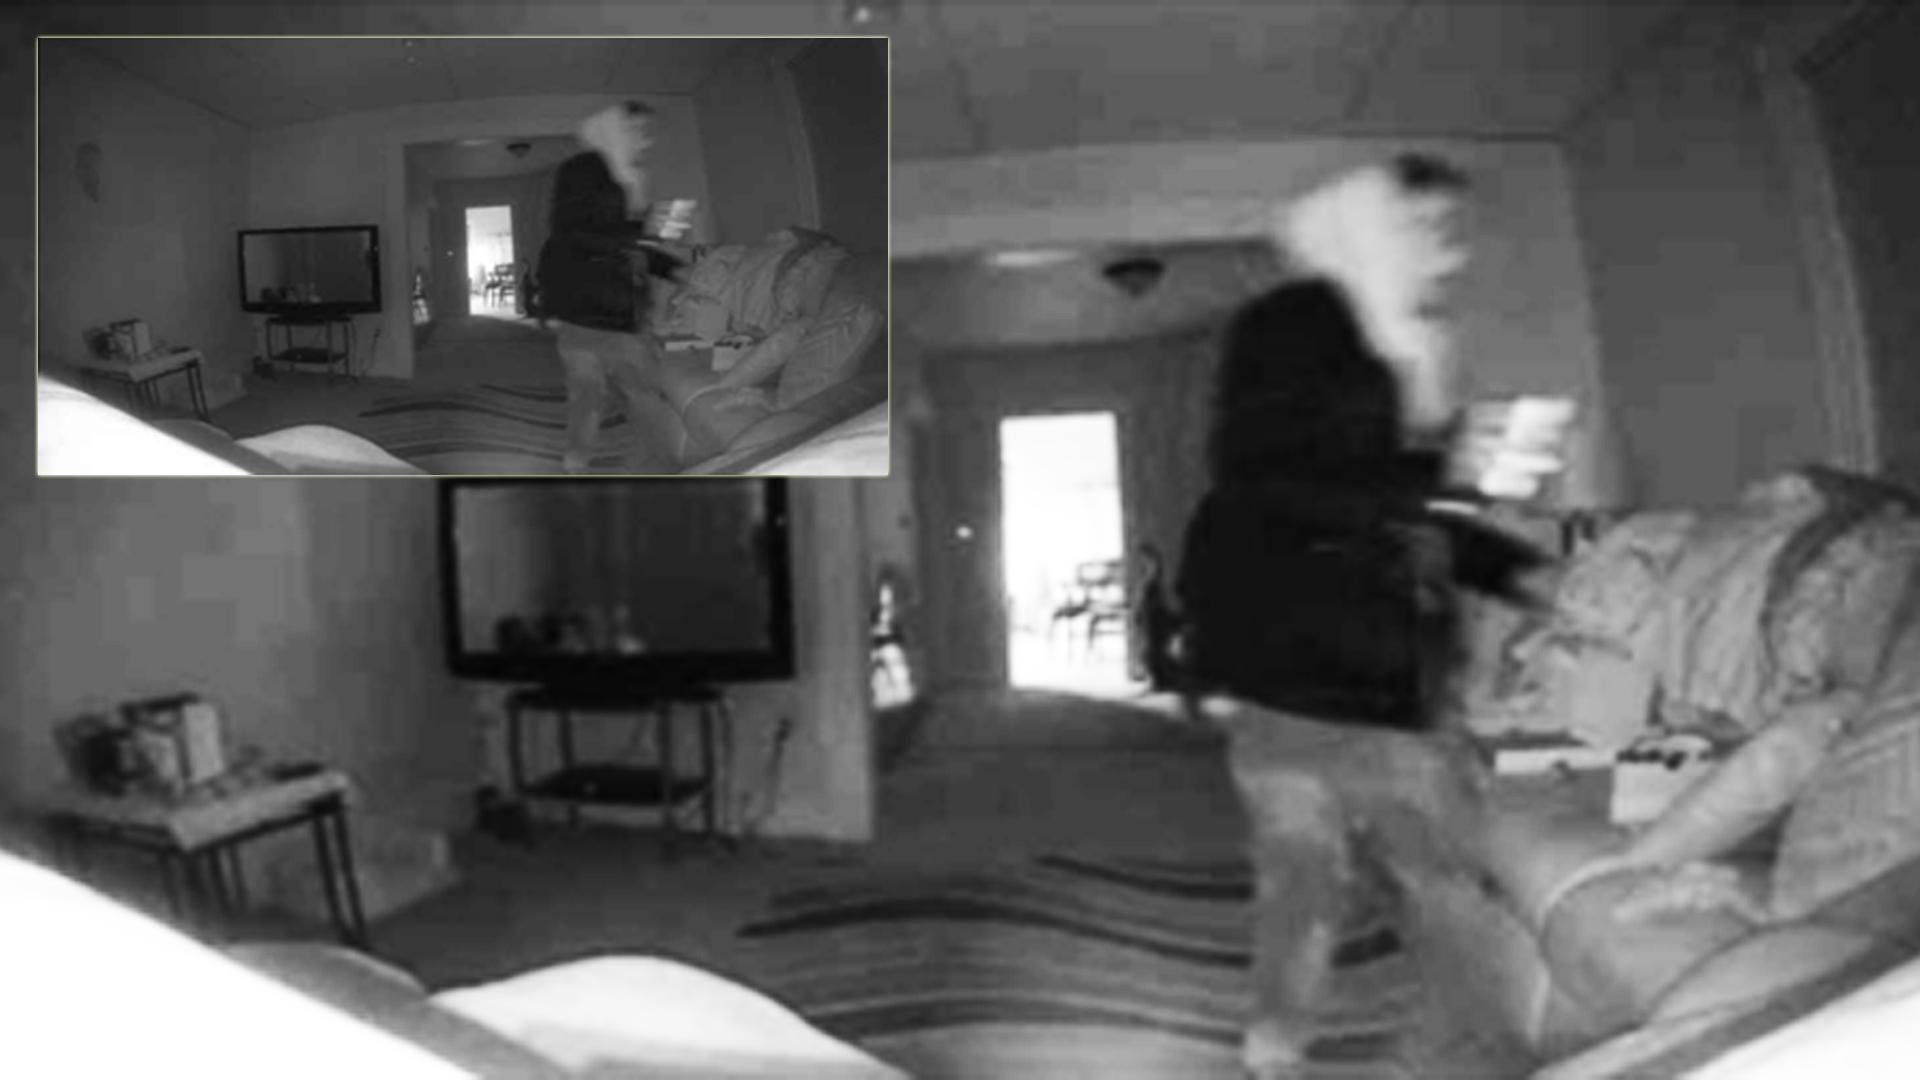 Miamisburg Police: Subject caught on camera starting duplex fire (Photo: Miamisburg Police)